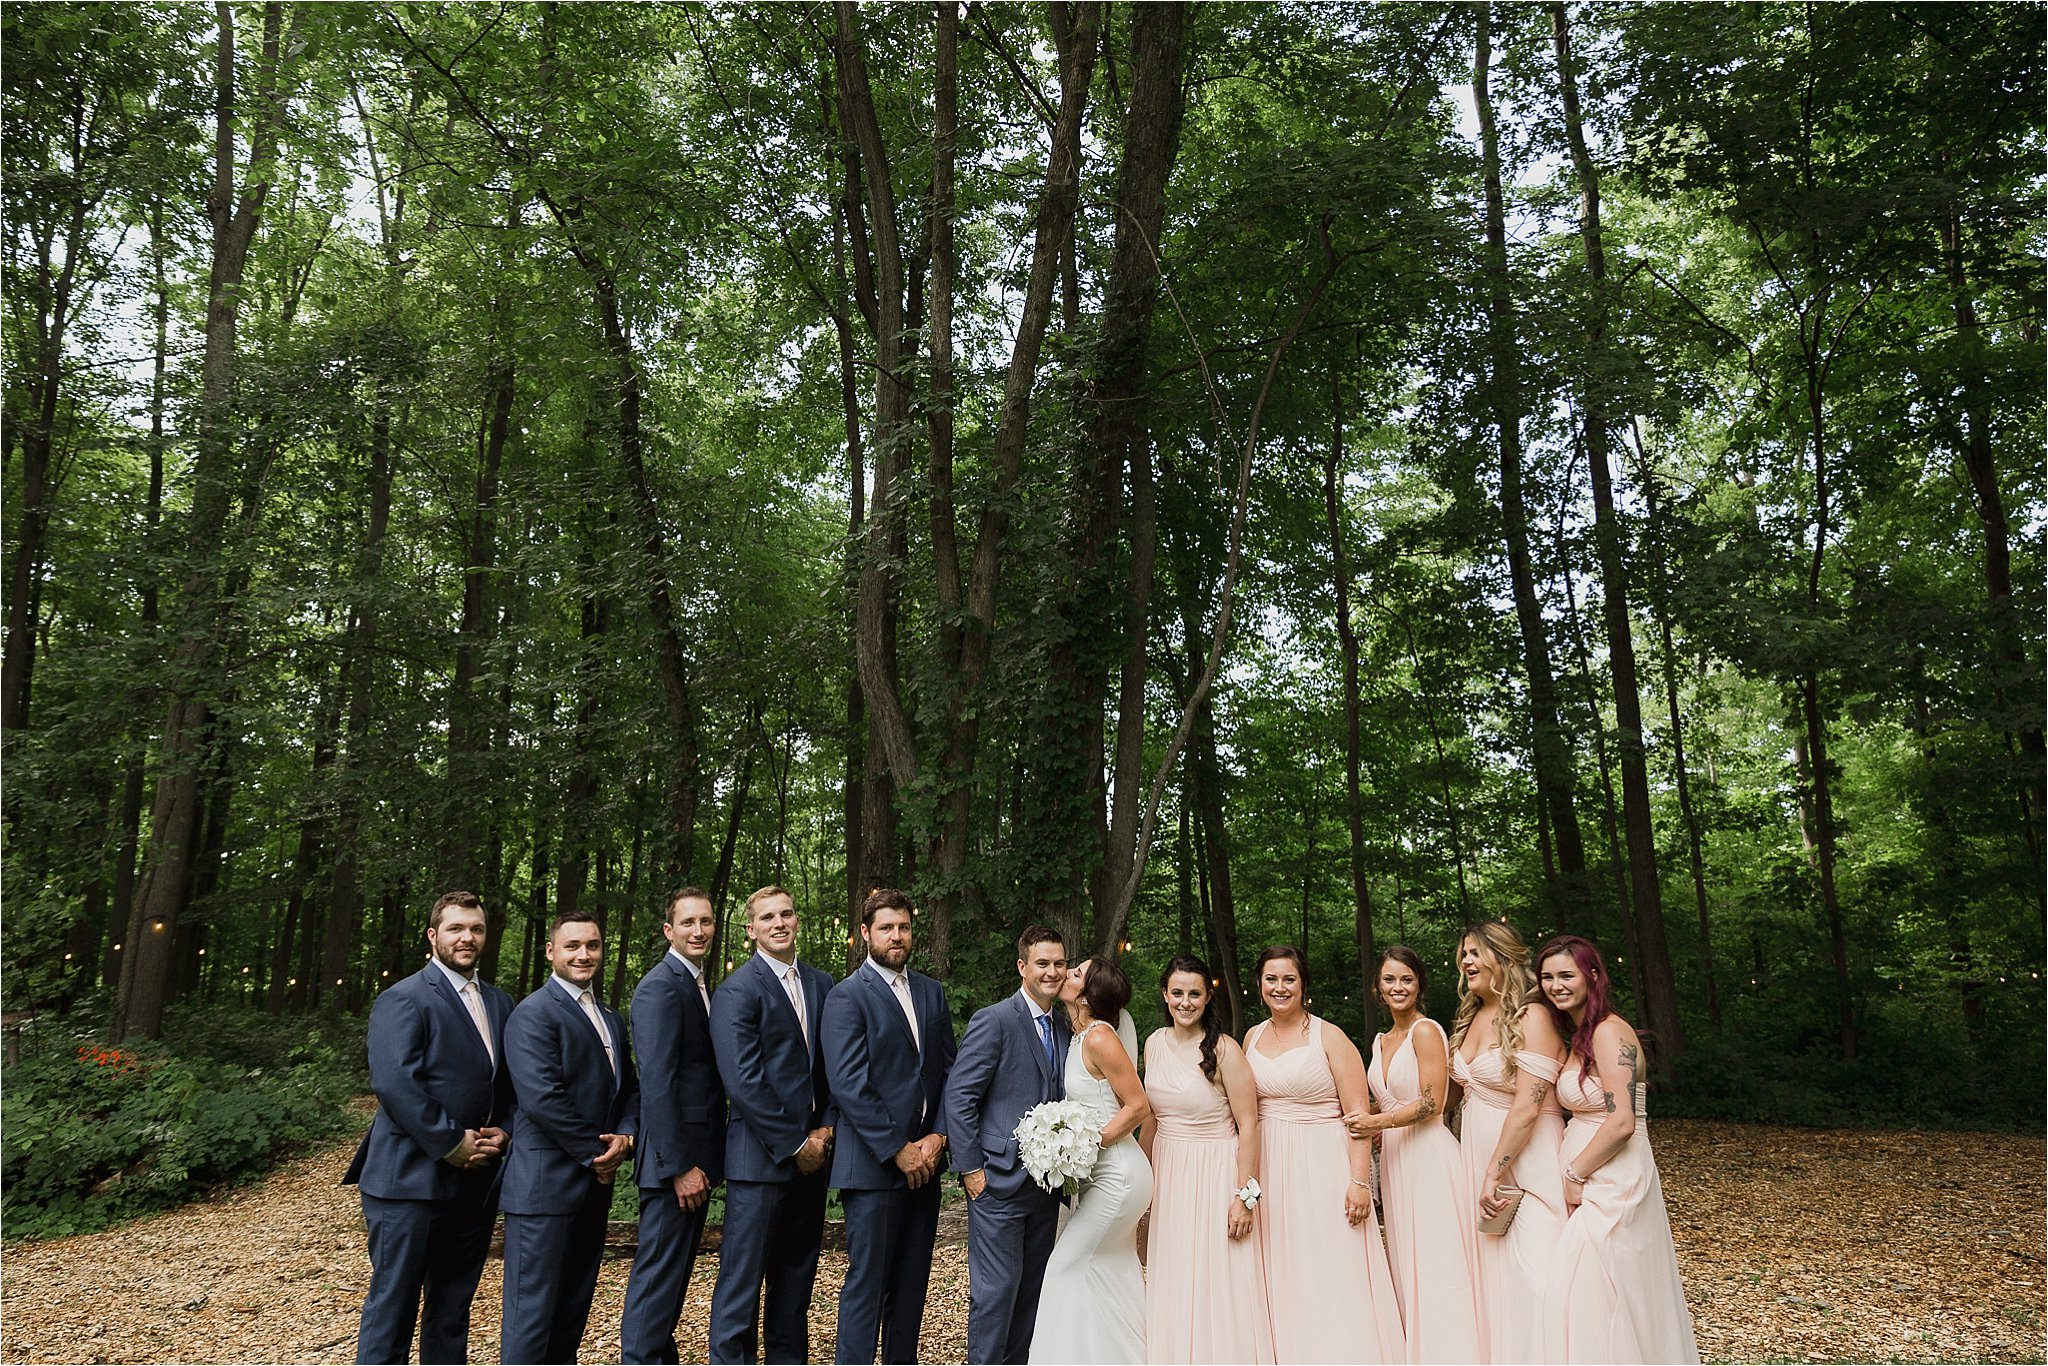 Sonia V Photography, The Clearing ceremony wedding venue, bridal party posing for a photo in the forest